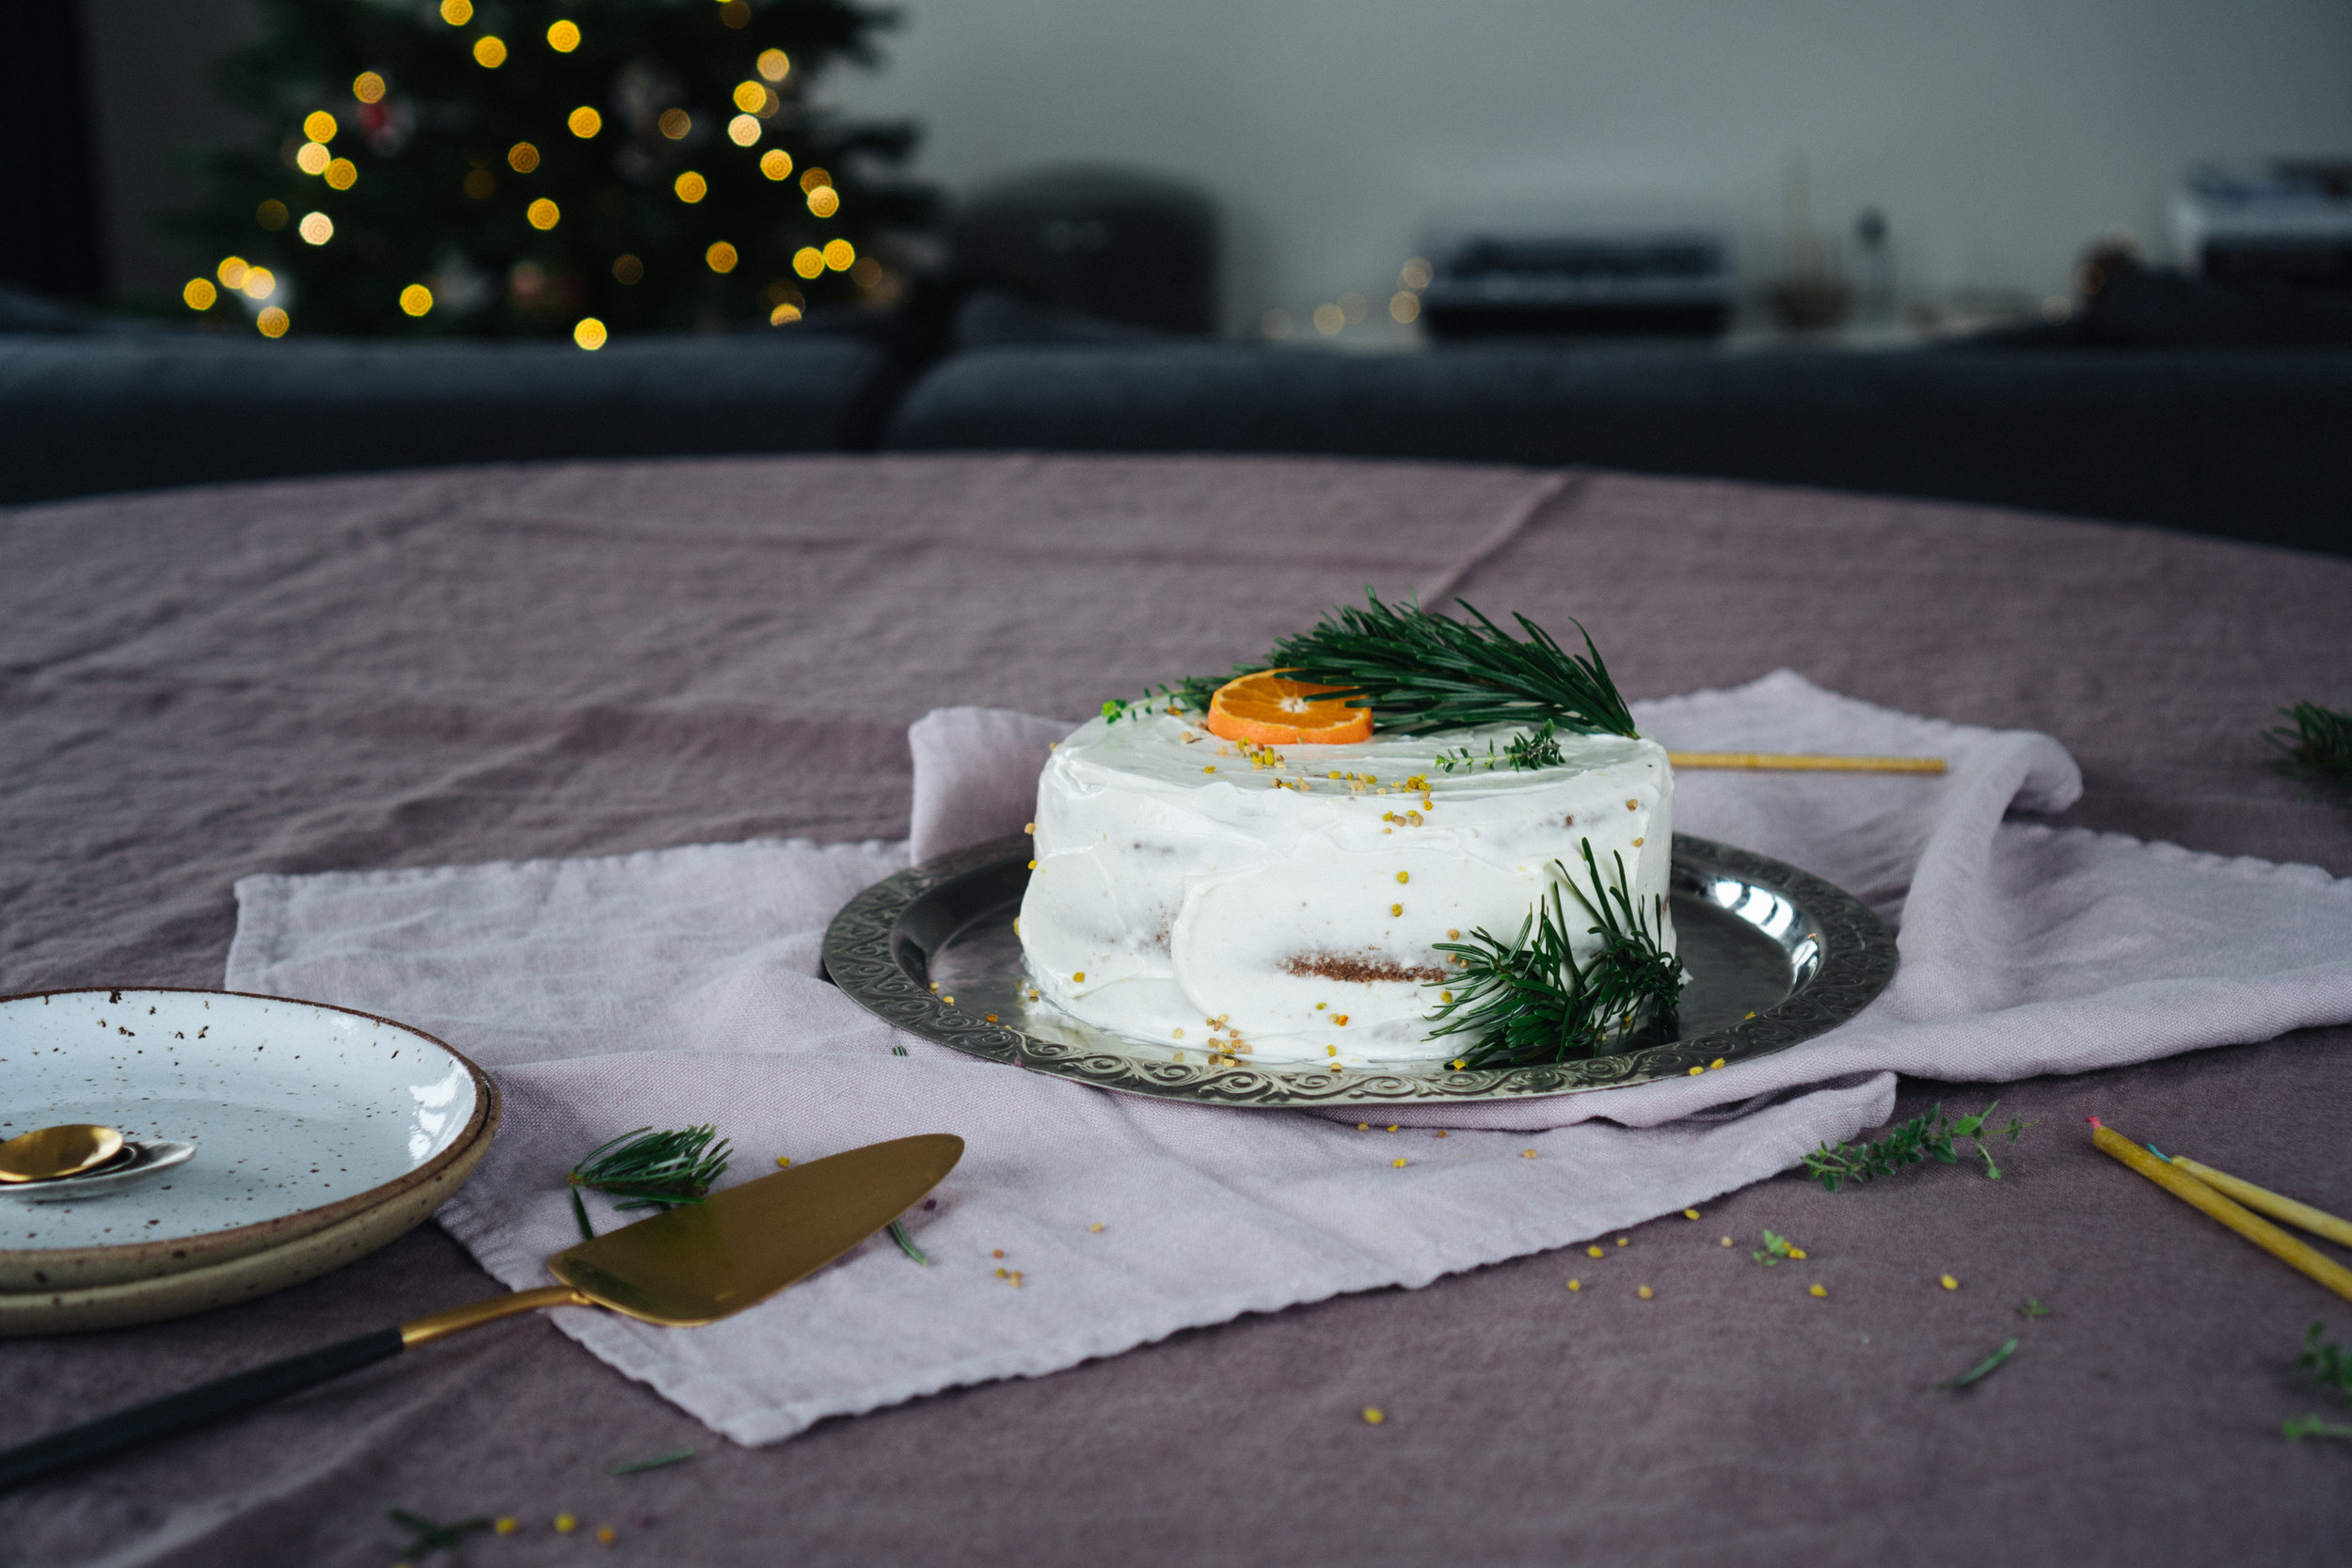 Spiced_Orange_Cake_with_Cream_cheese_Frosting.jpg